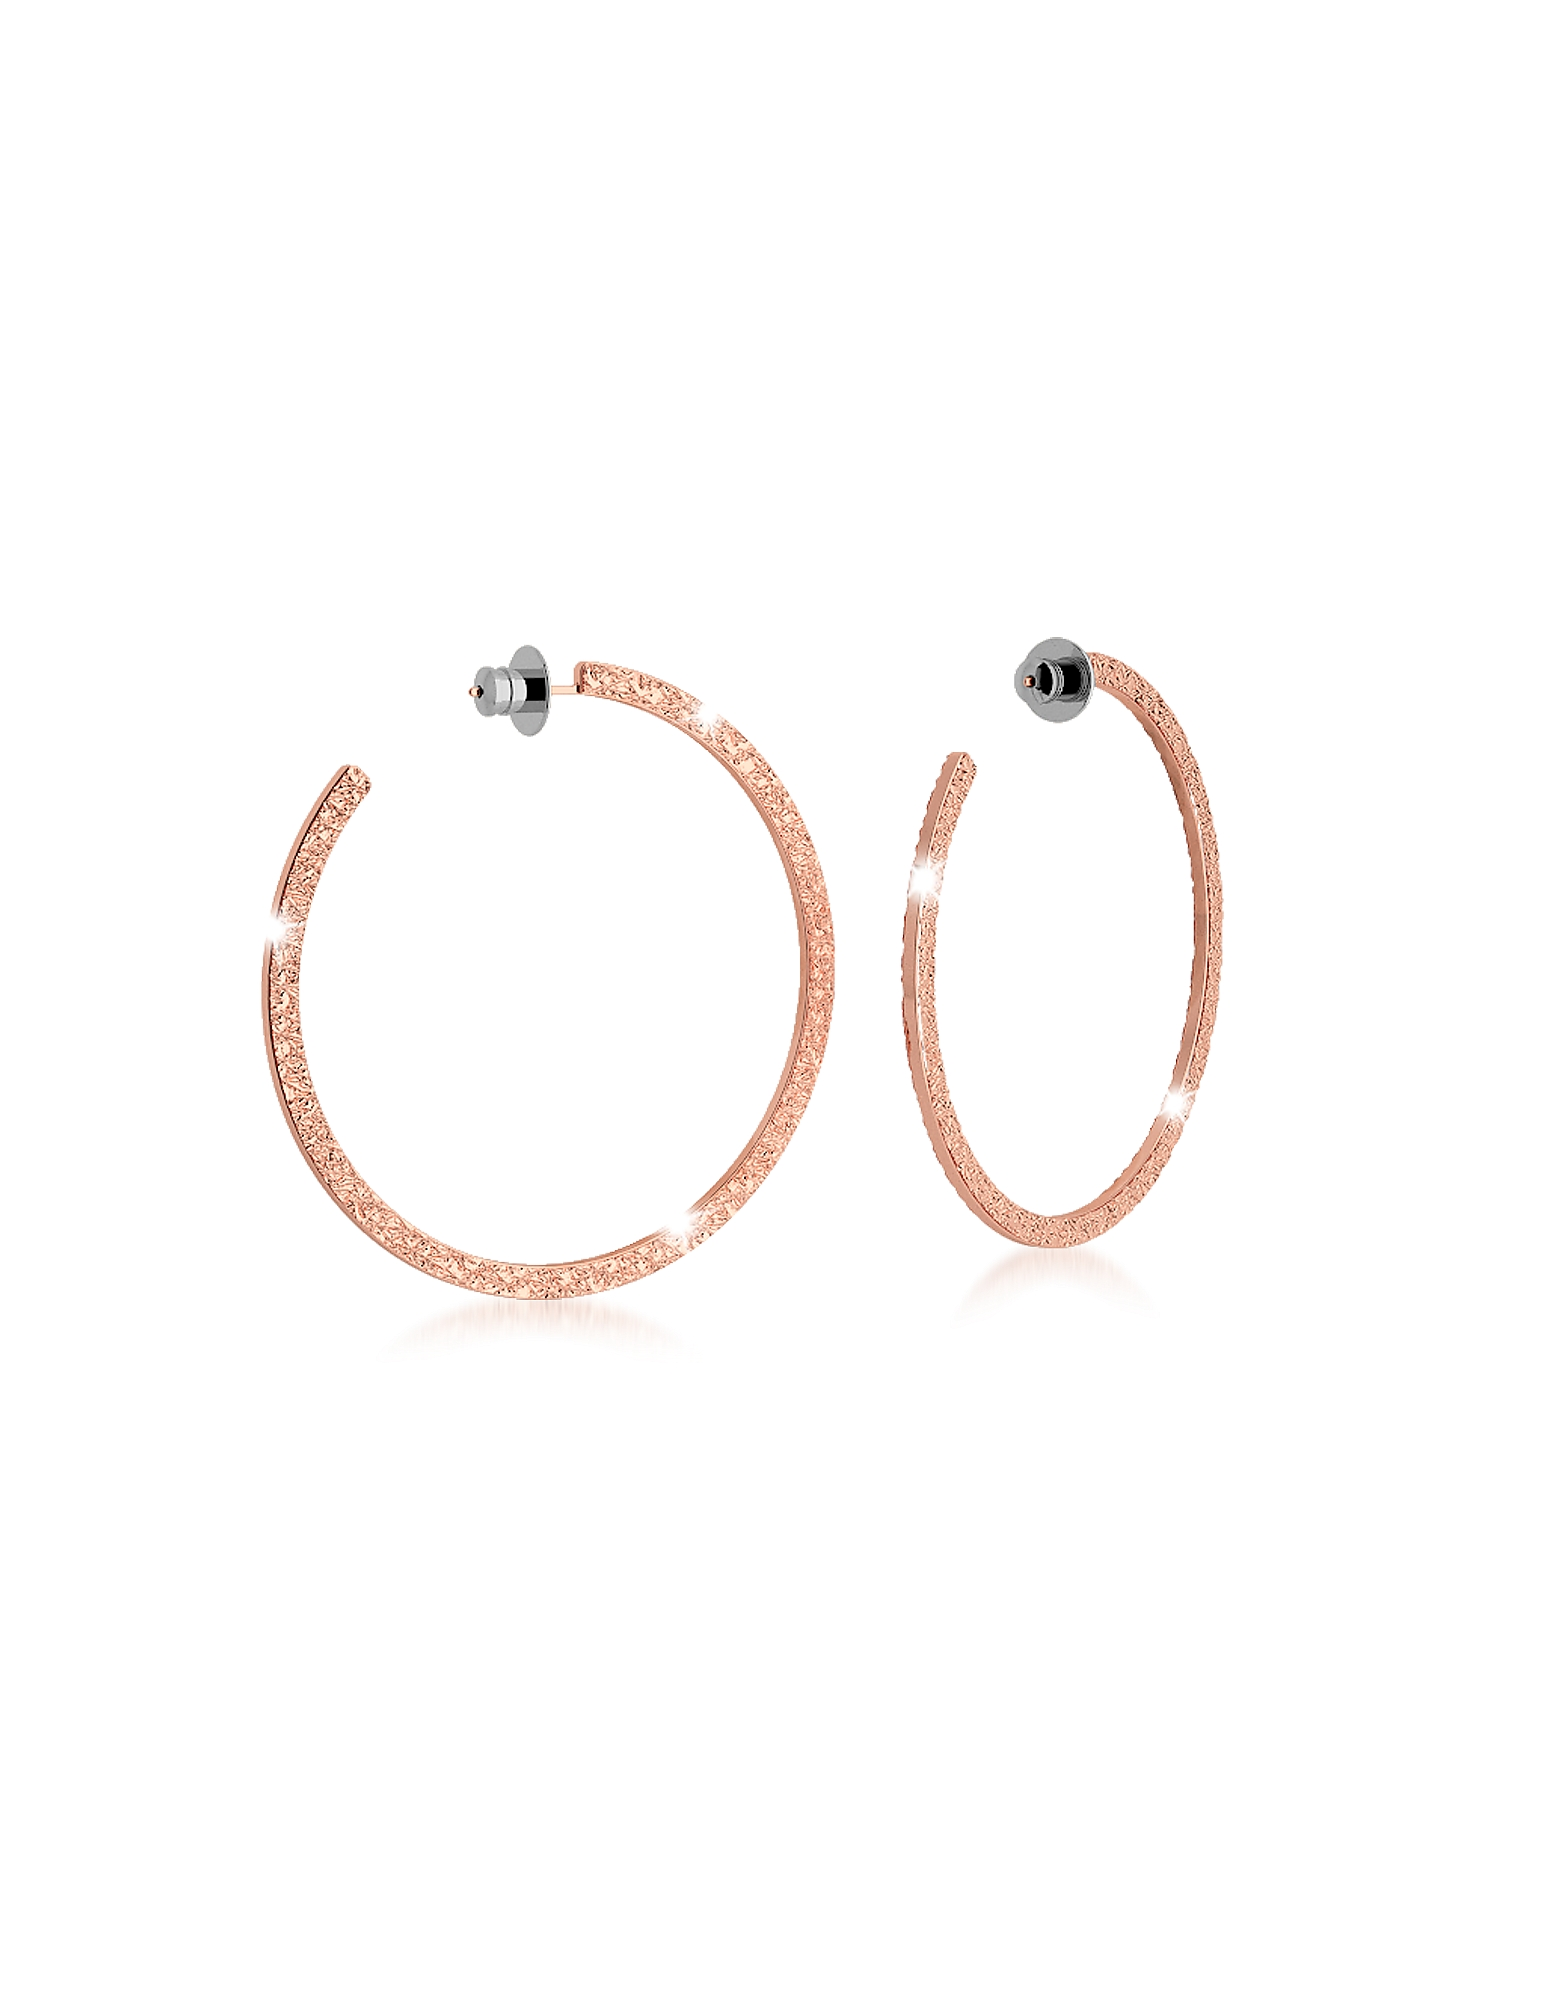 R-ZERO Rose Gold Over Bronze Hoop Earrings